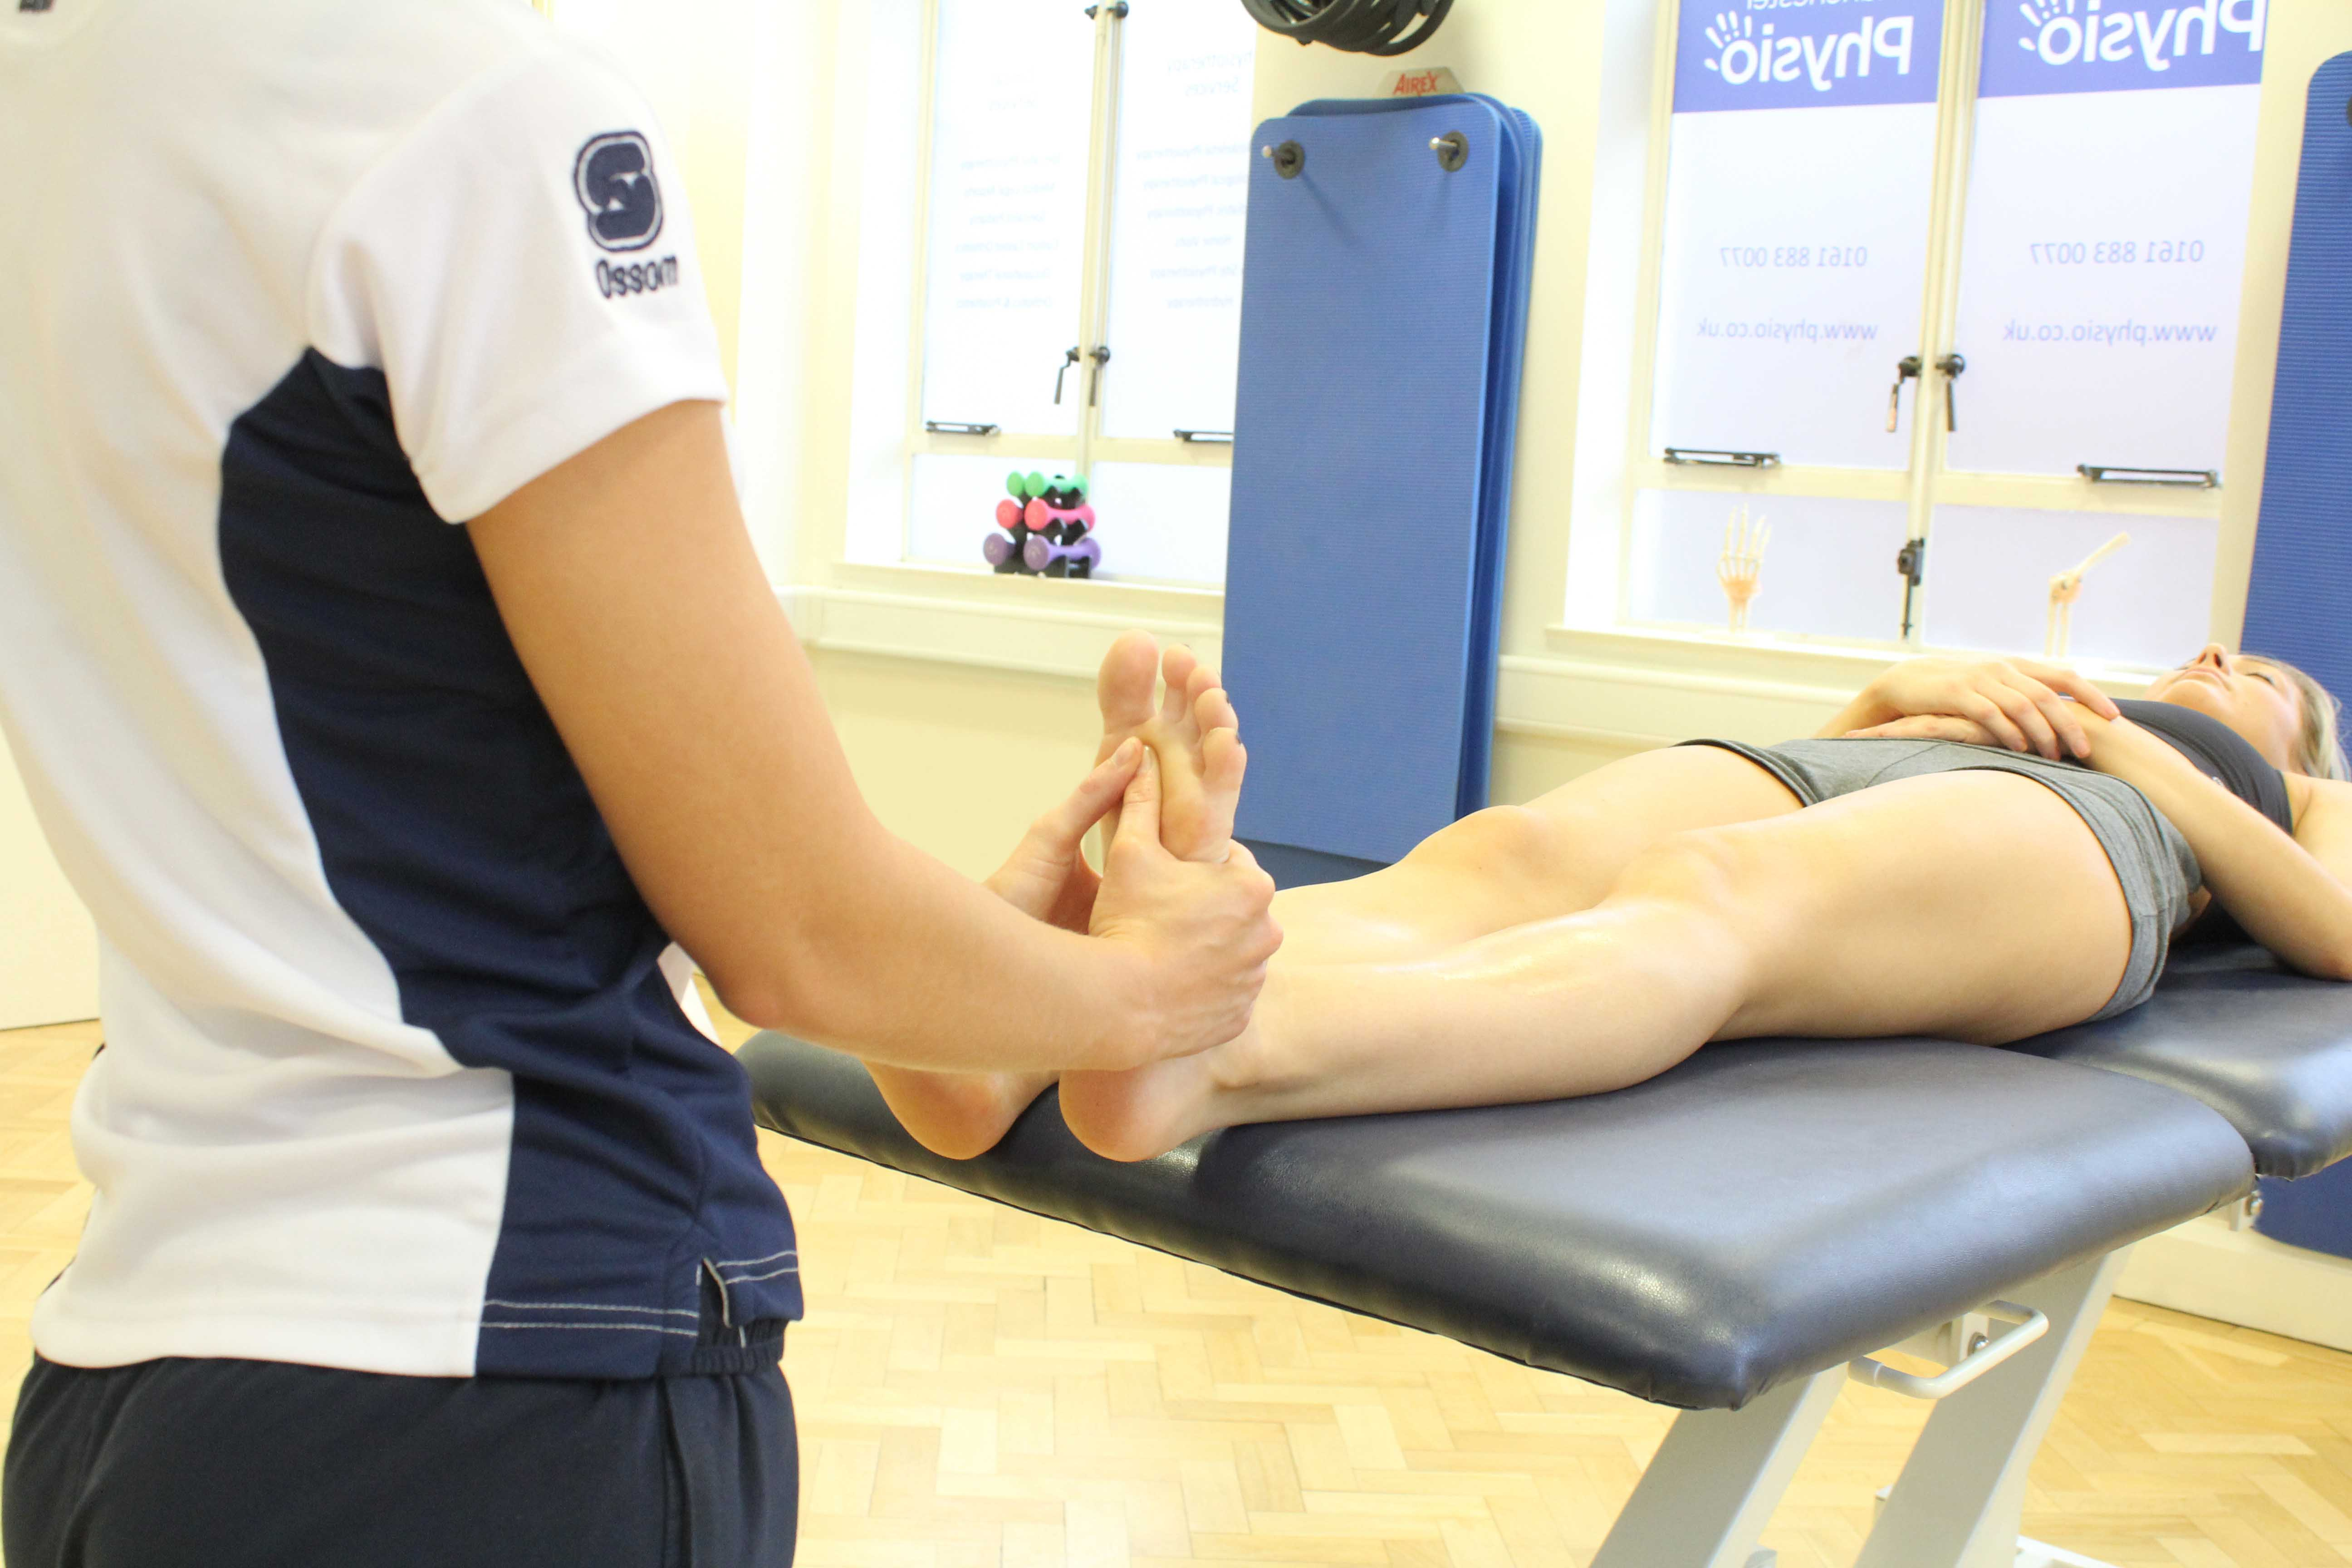 Soft tissue massage of the connective planta fascia tissue under the foot.